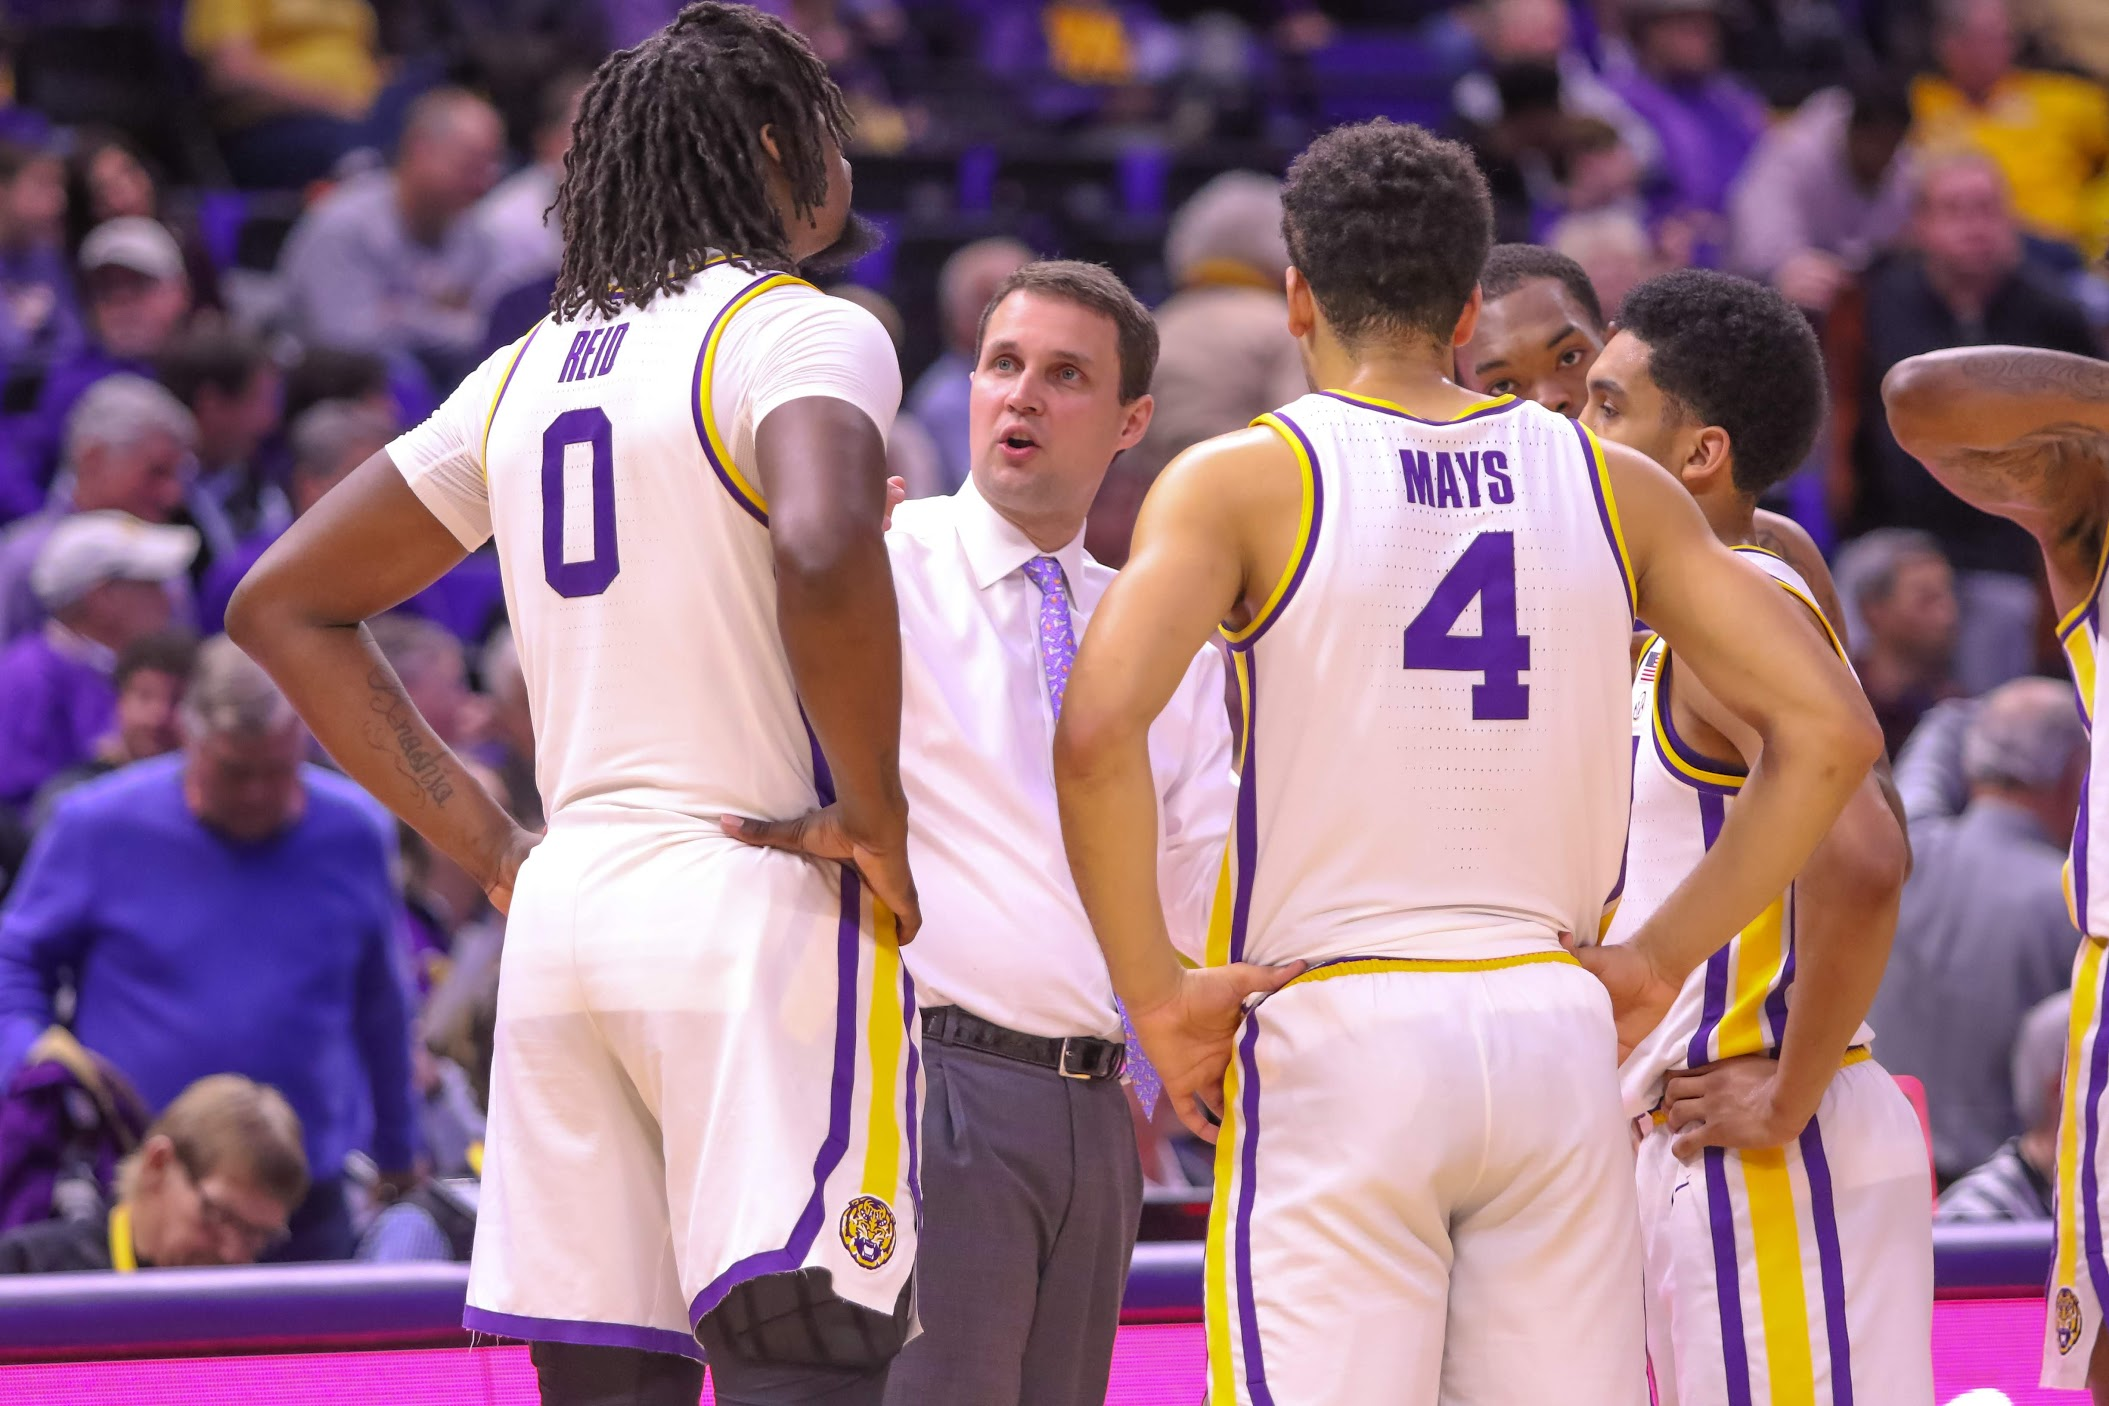 LSU completes miraculous comeback over Missouri